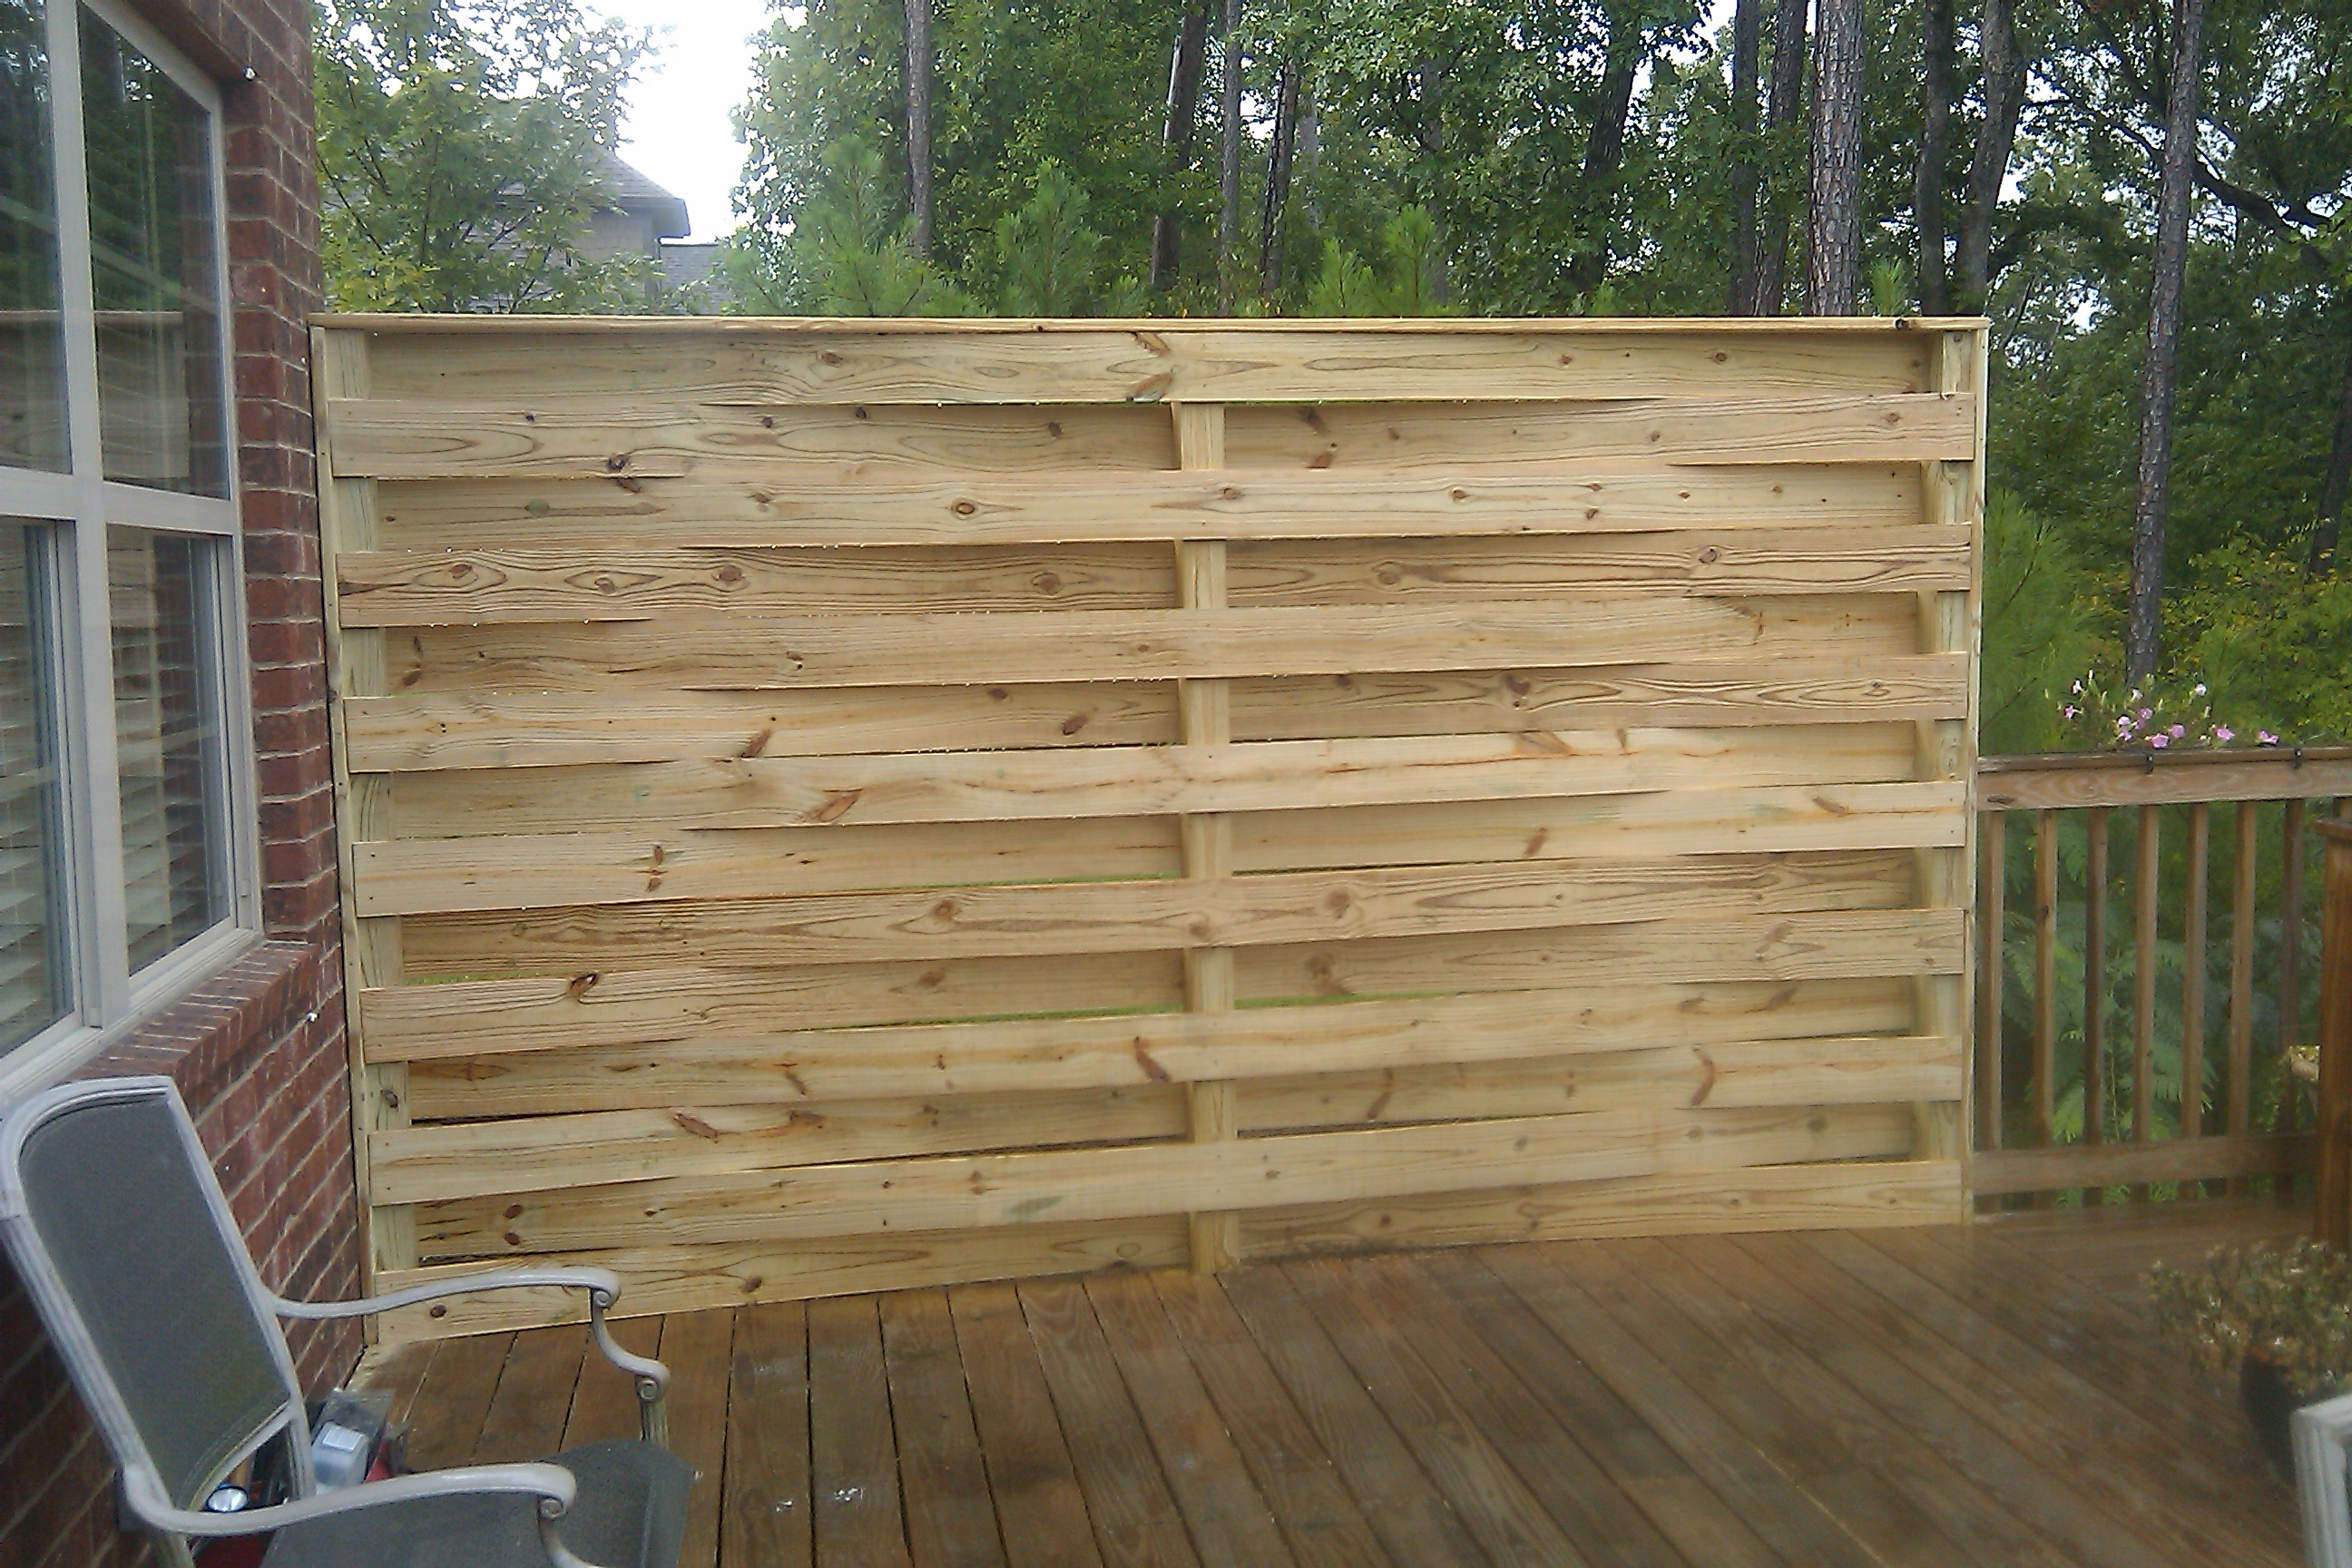 The Birmingham Handyman - Fence Repair Birmingham AL